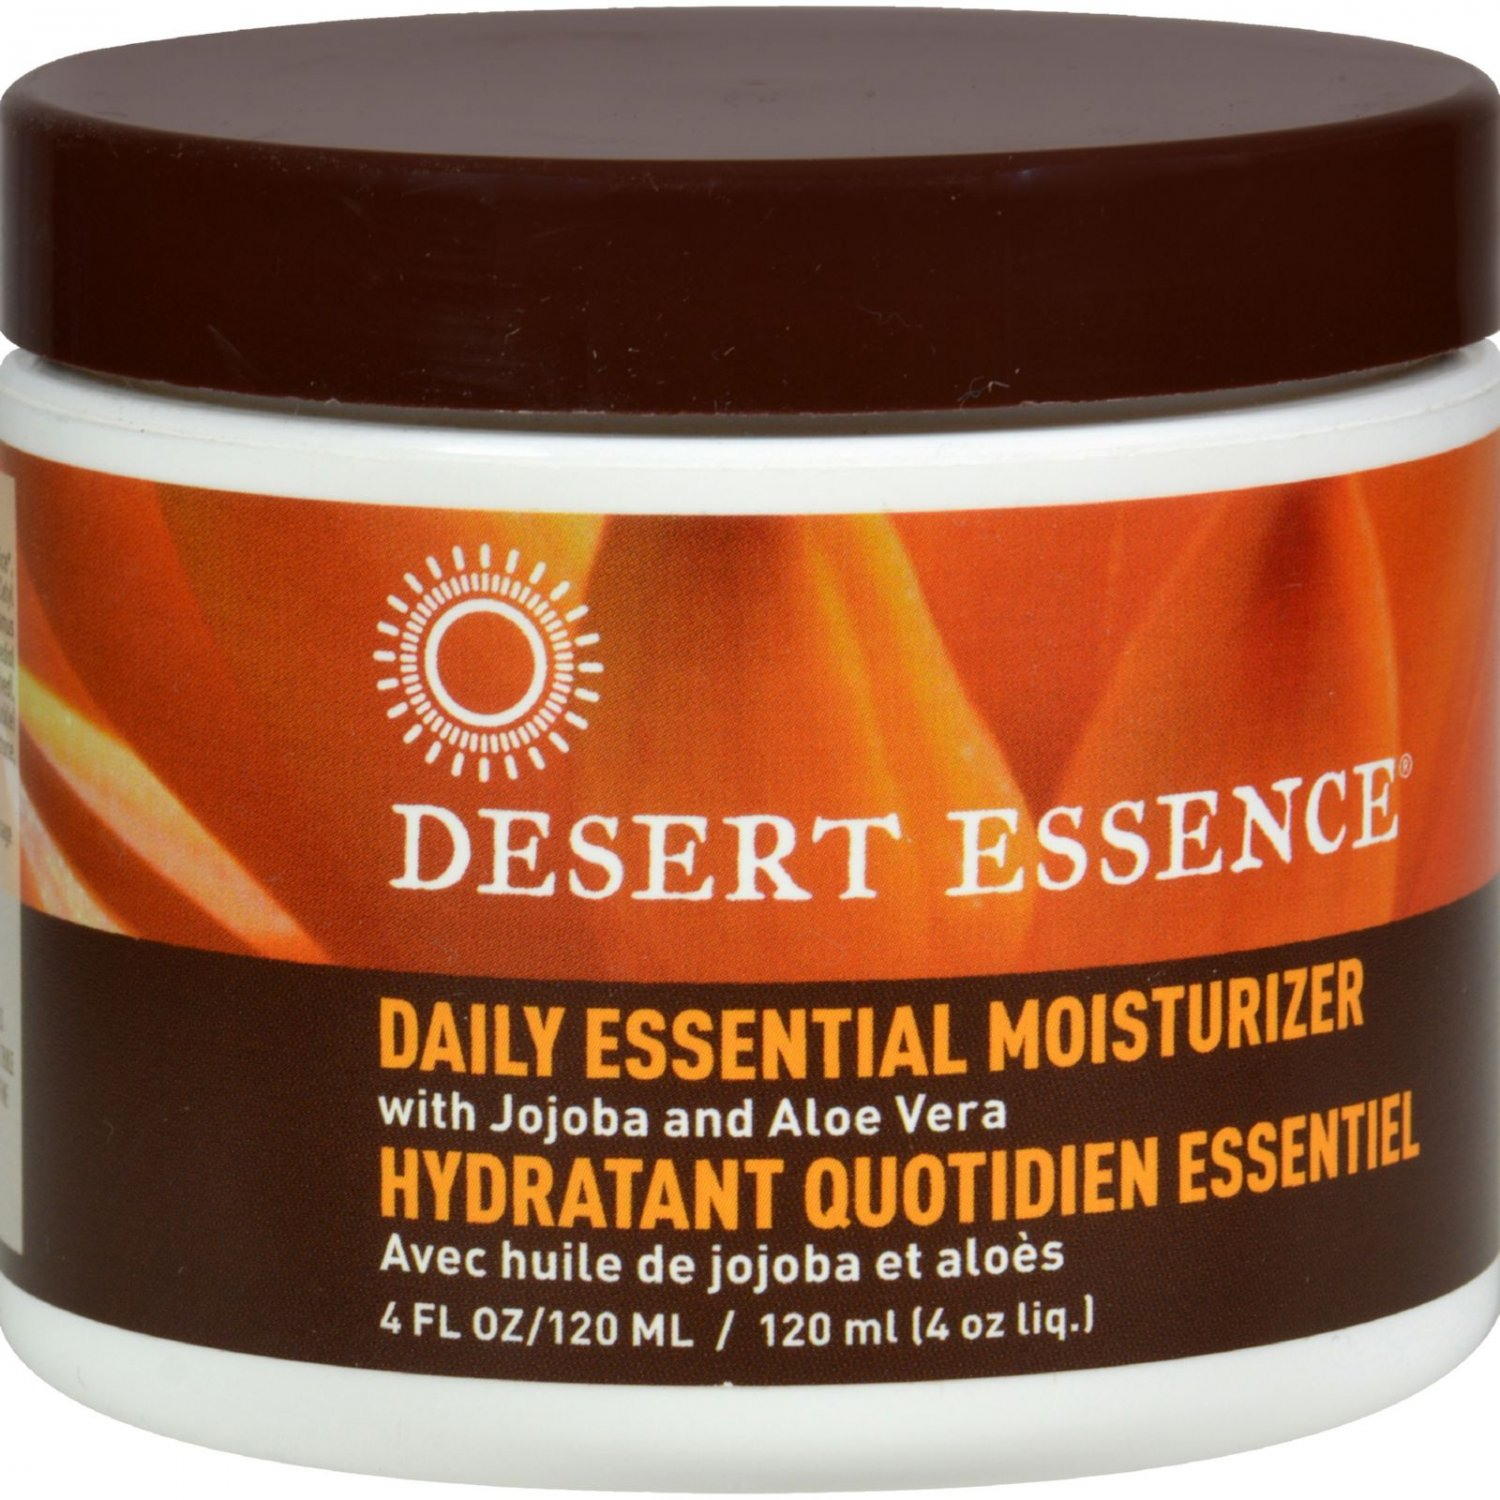 Desert Essence Facial Mositurizer - Daily Essential - 4 fl oz